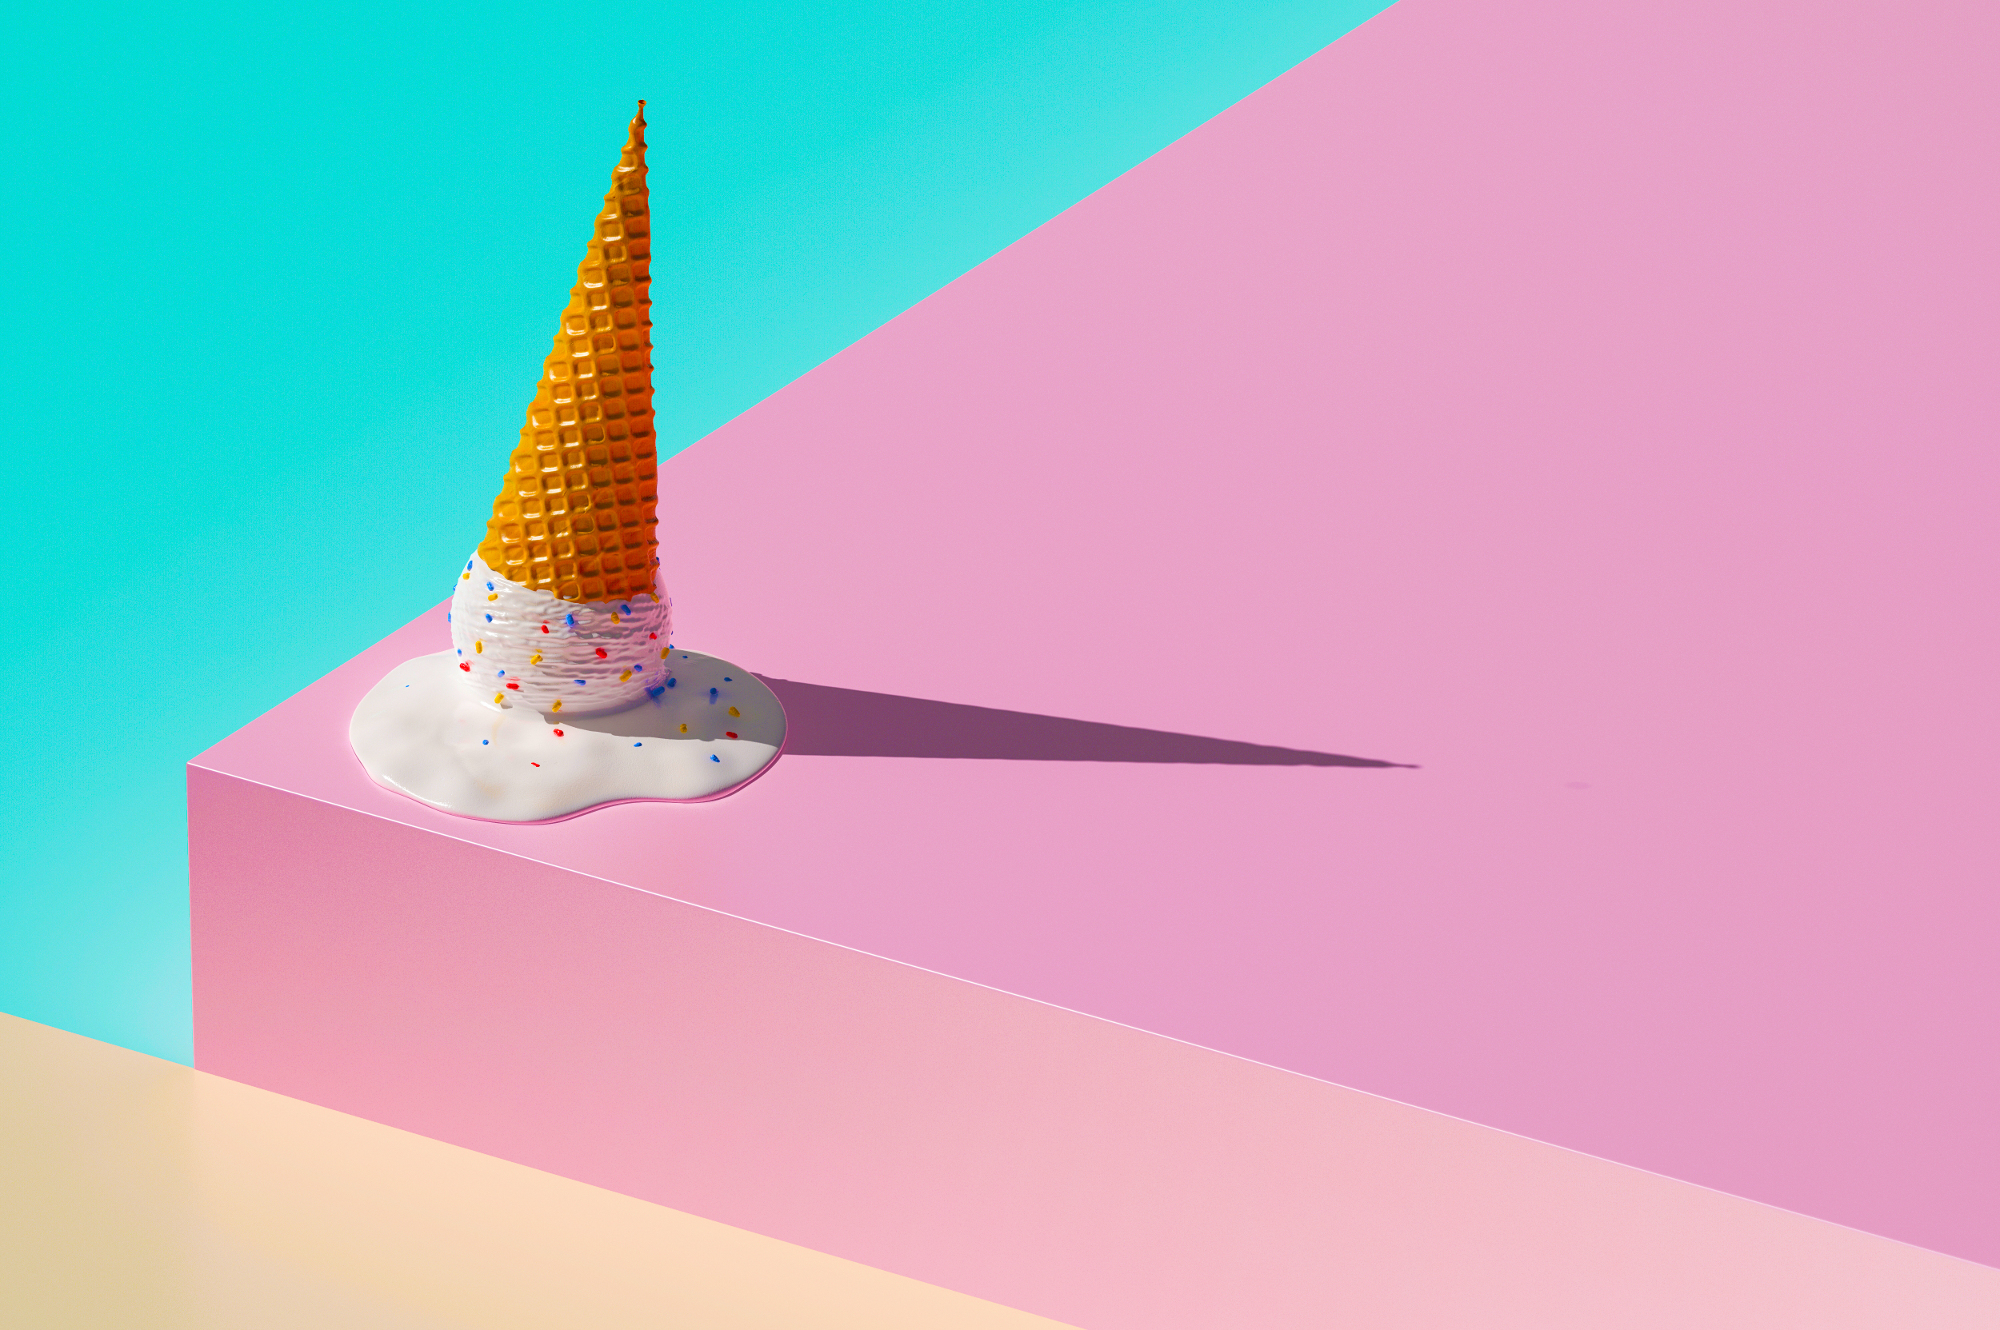 5a579499a3fa3-icecream_large-(1)_5a579499a3eac.jpg